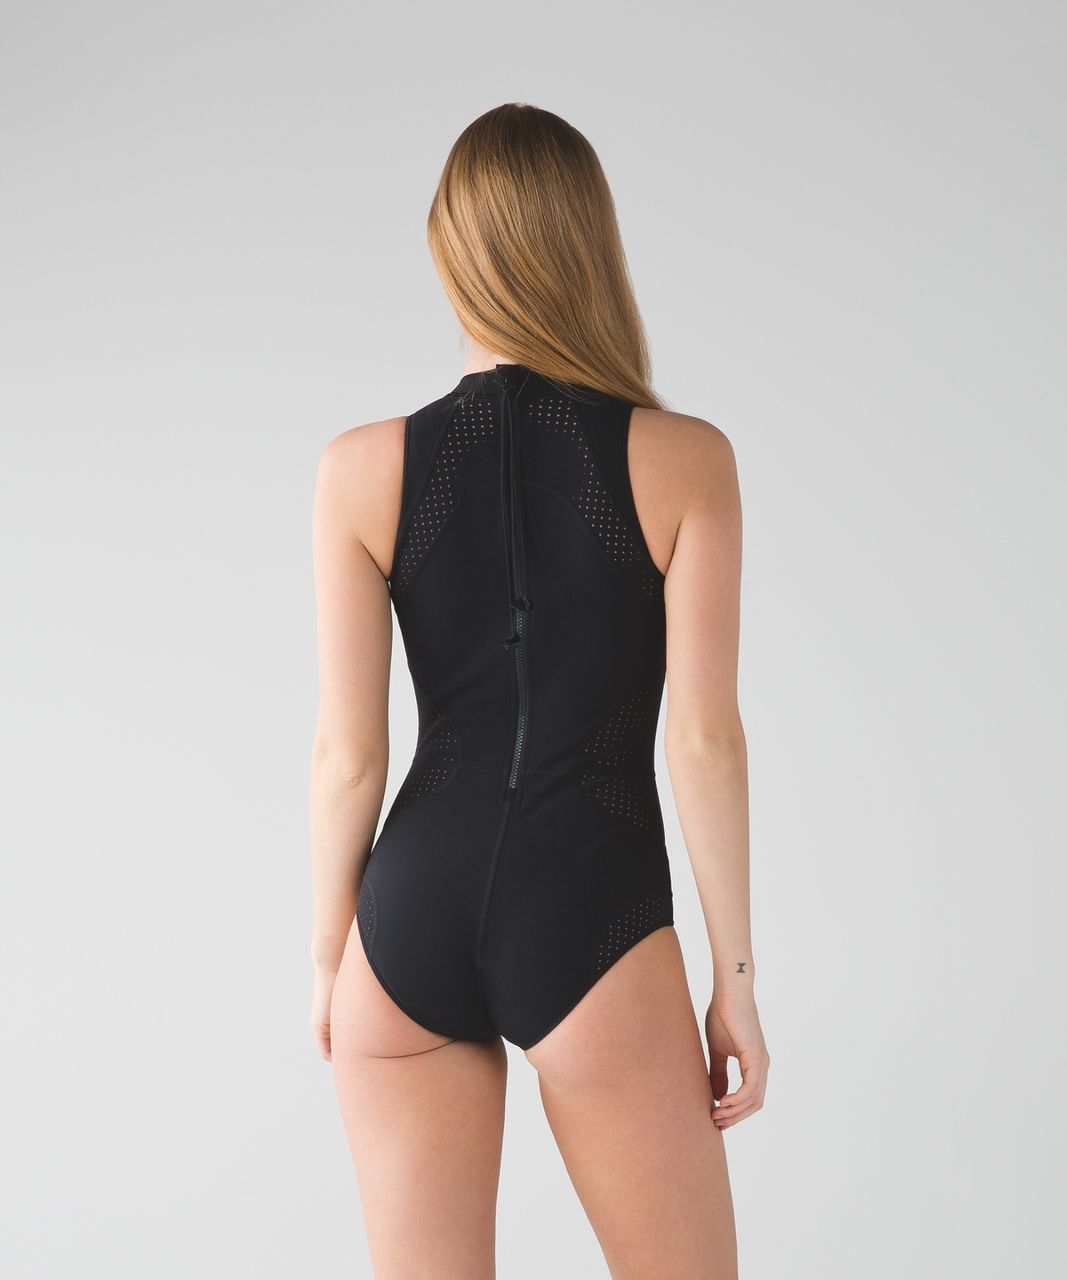 Lululemon Perf-ect Paddle Suit - Black